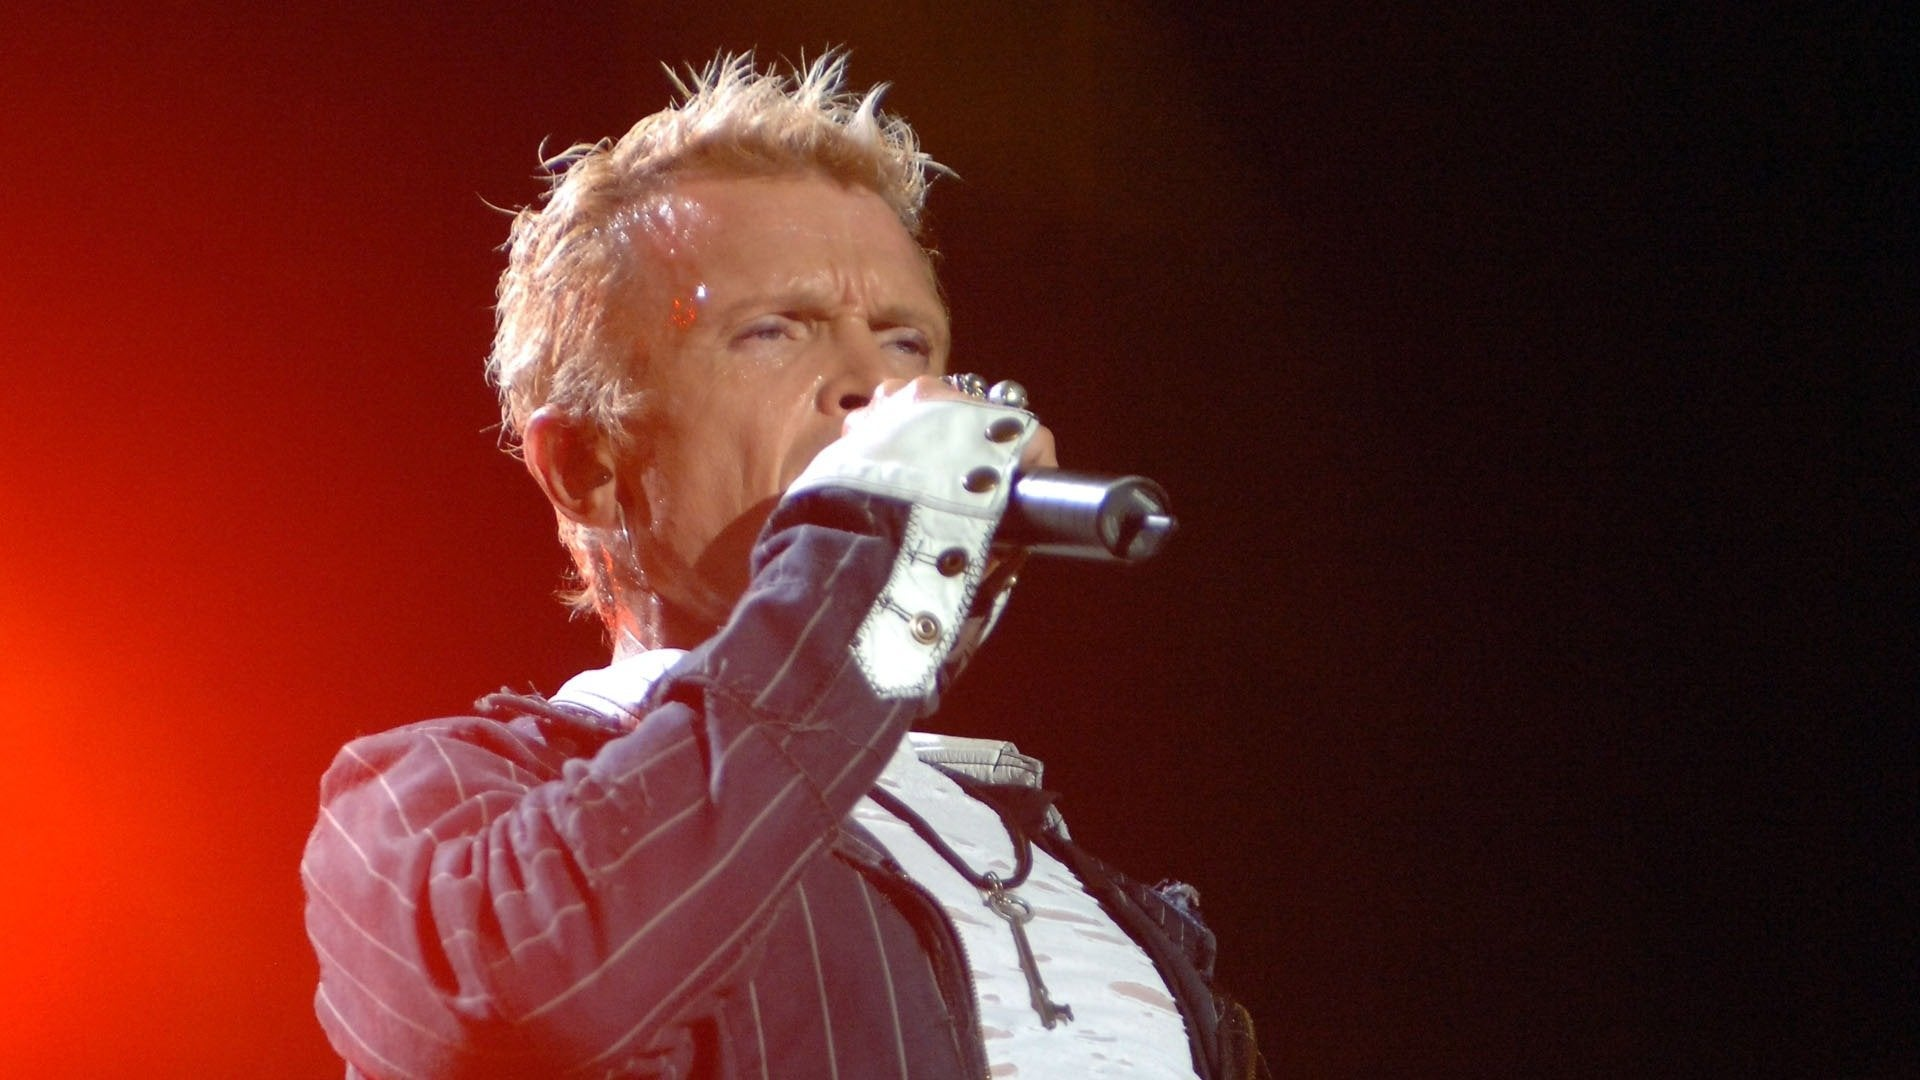 Billy Idol: In Super Overdrive Live